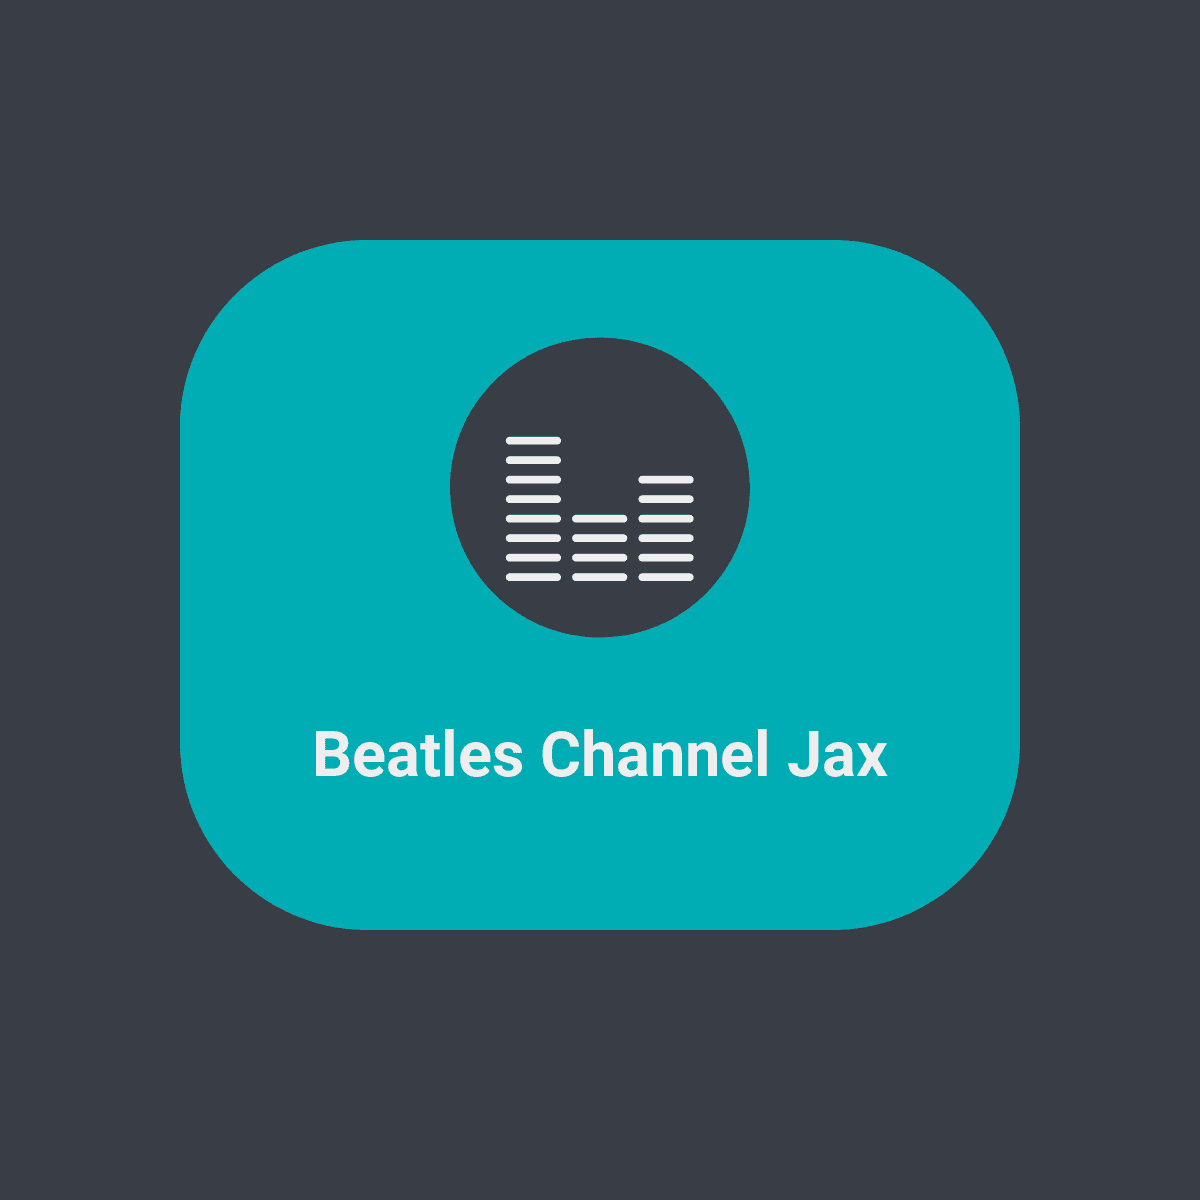 Beatles Channel Jax